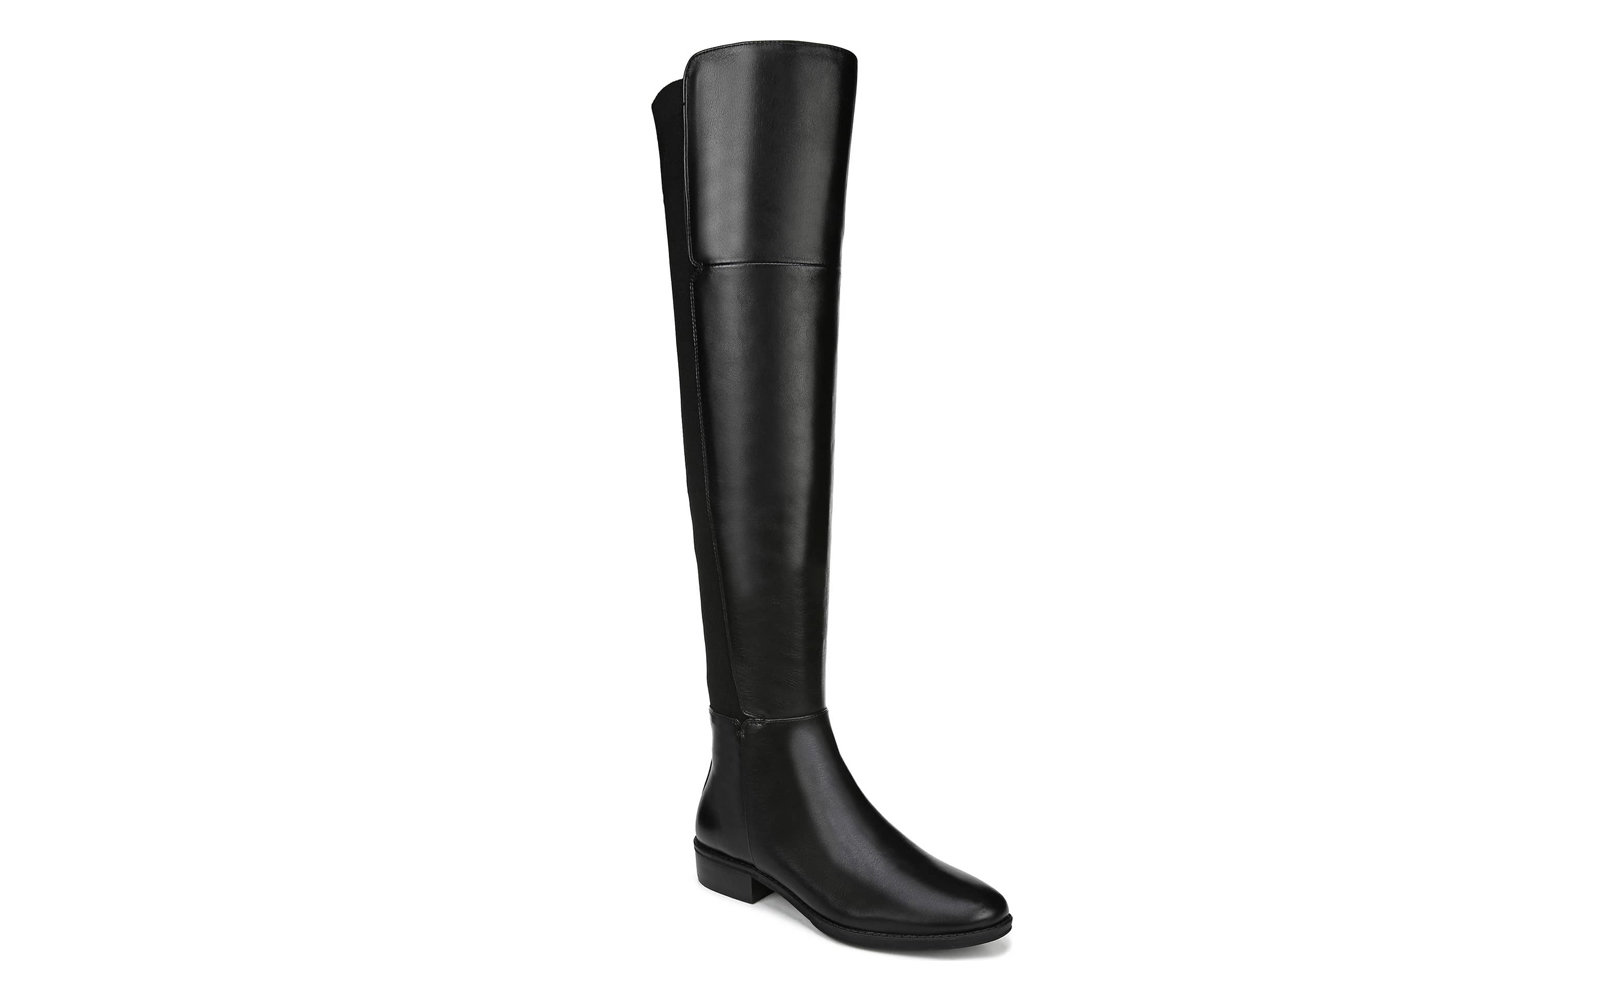 Boots On App Image Of Boots Imageneaco